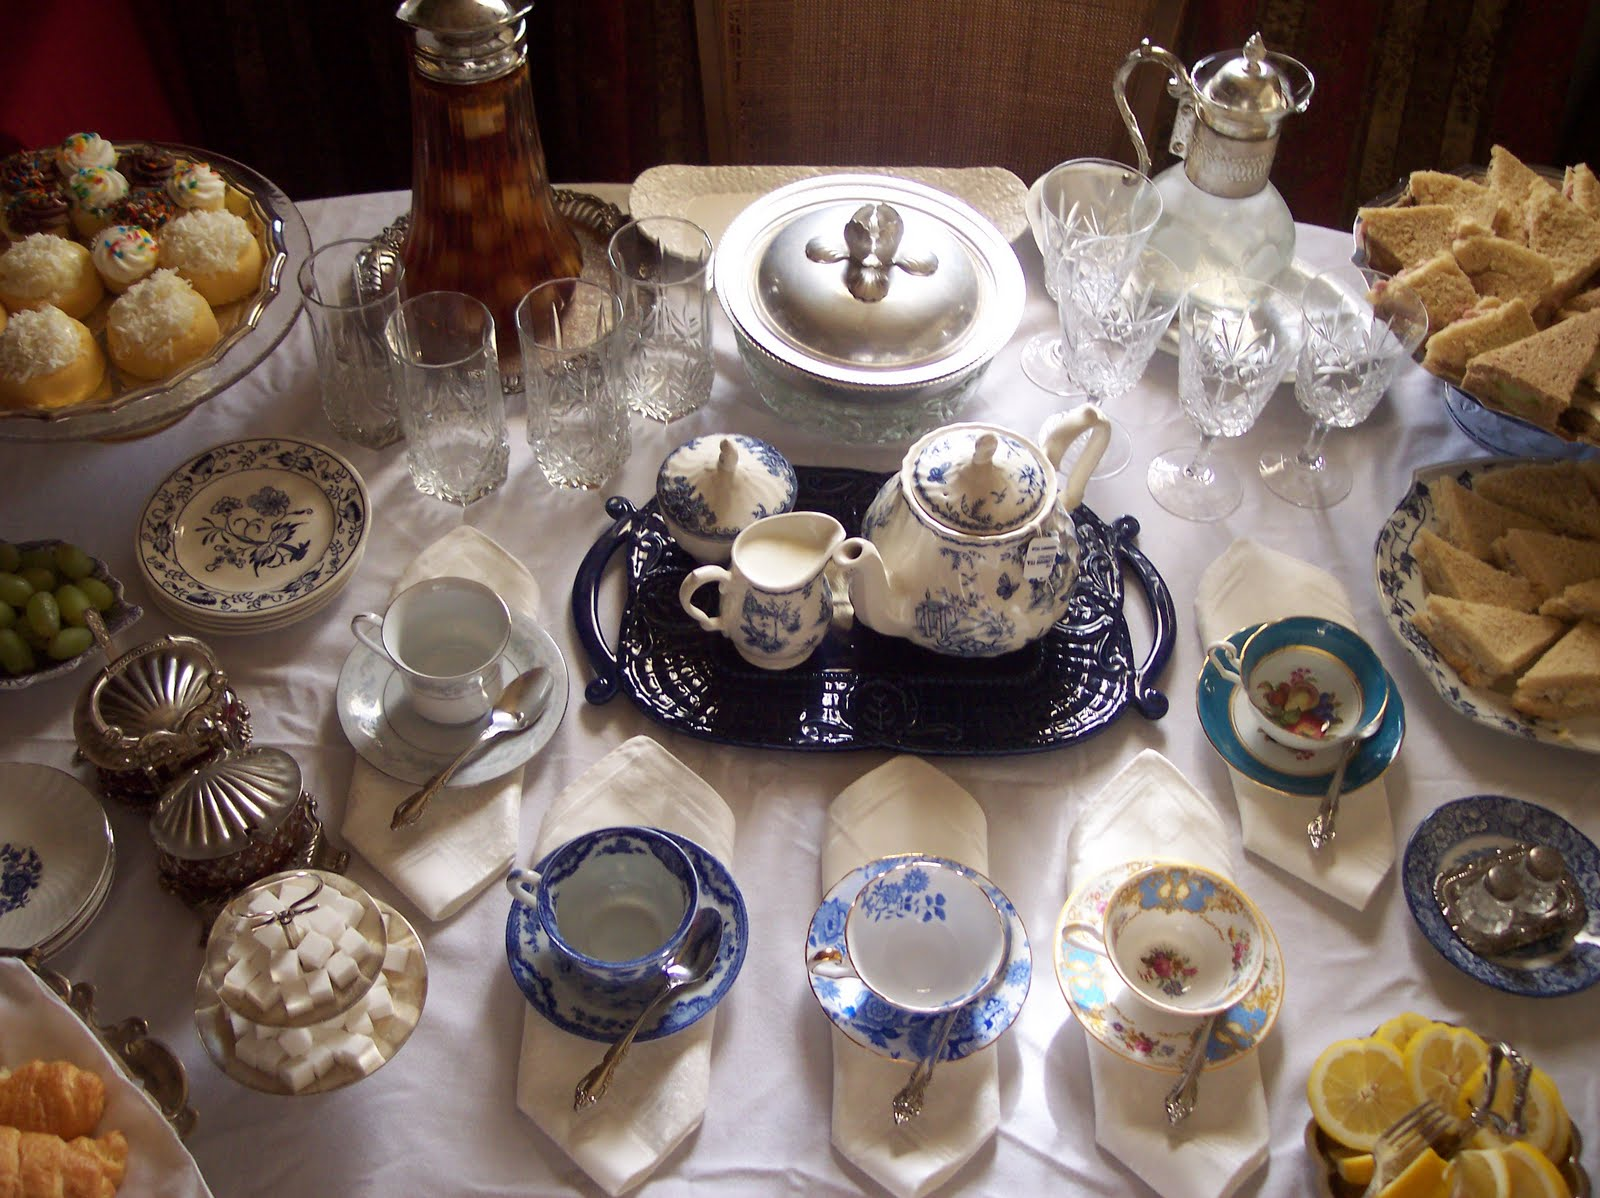 The thrifty groove let 39 s enjoy a high tea party for Victorian tea party supplies